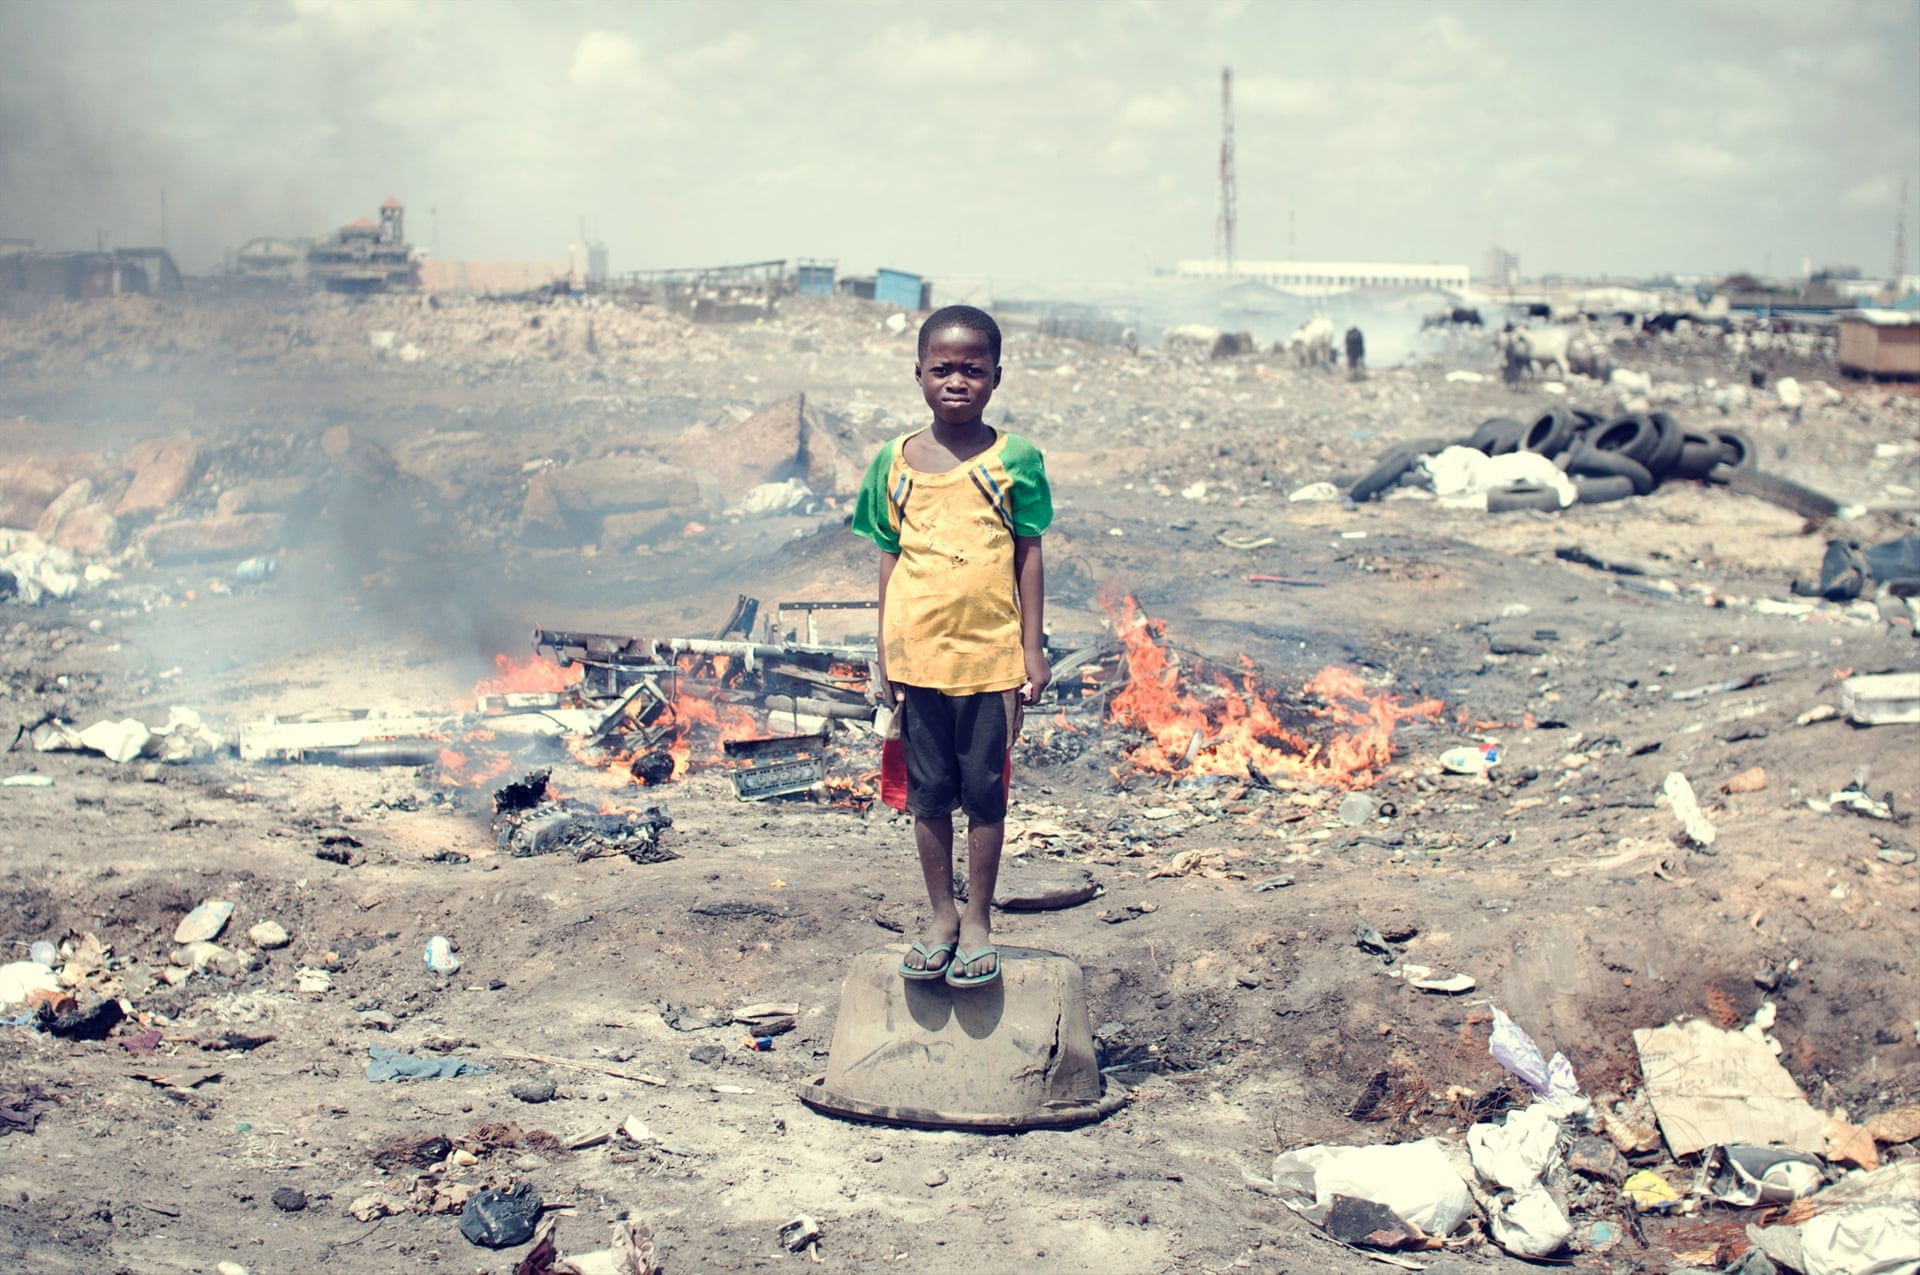 Kwabena Labobe, 10, plays on the site. His parents are not able to send him to school and forbid him to burn e-waste .